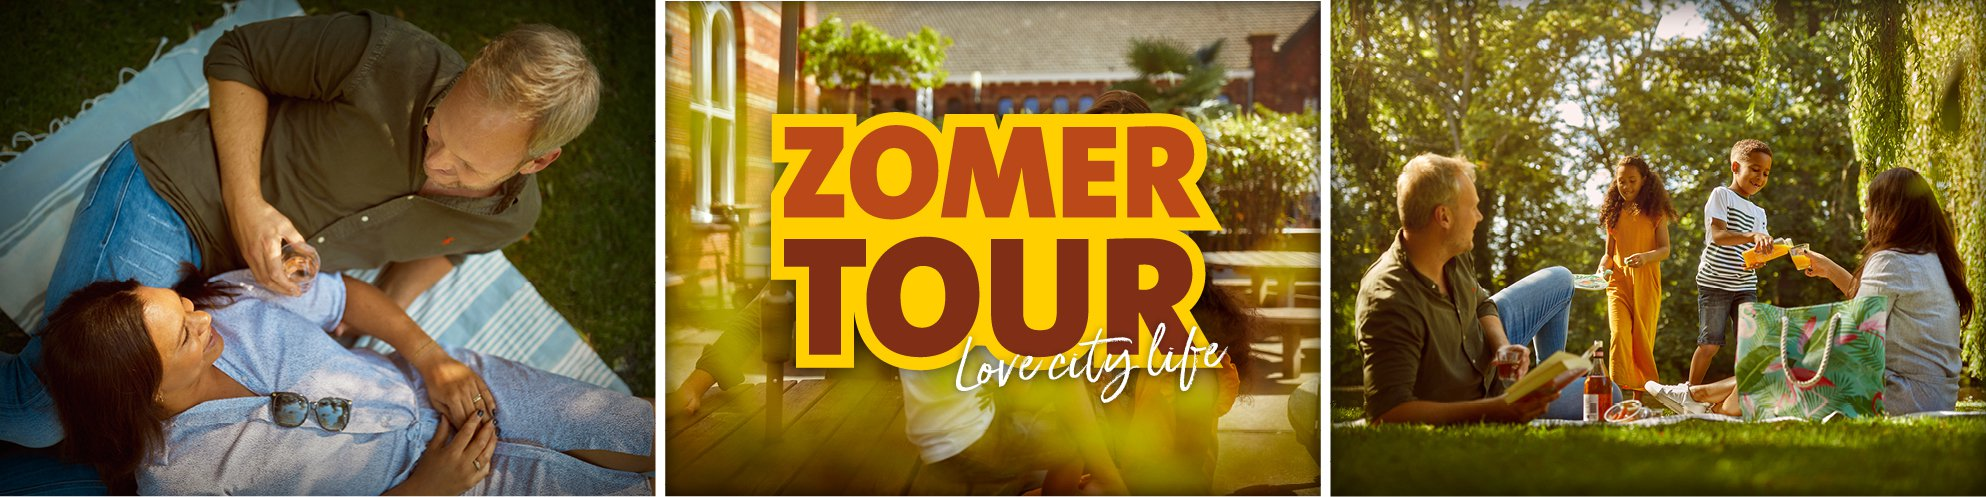 BANNER_PAGE ZOMER TOUR.jpg